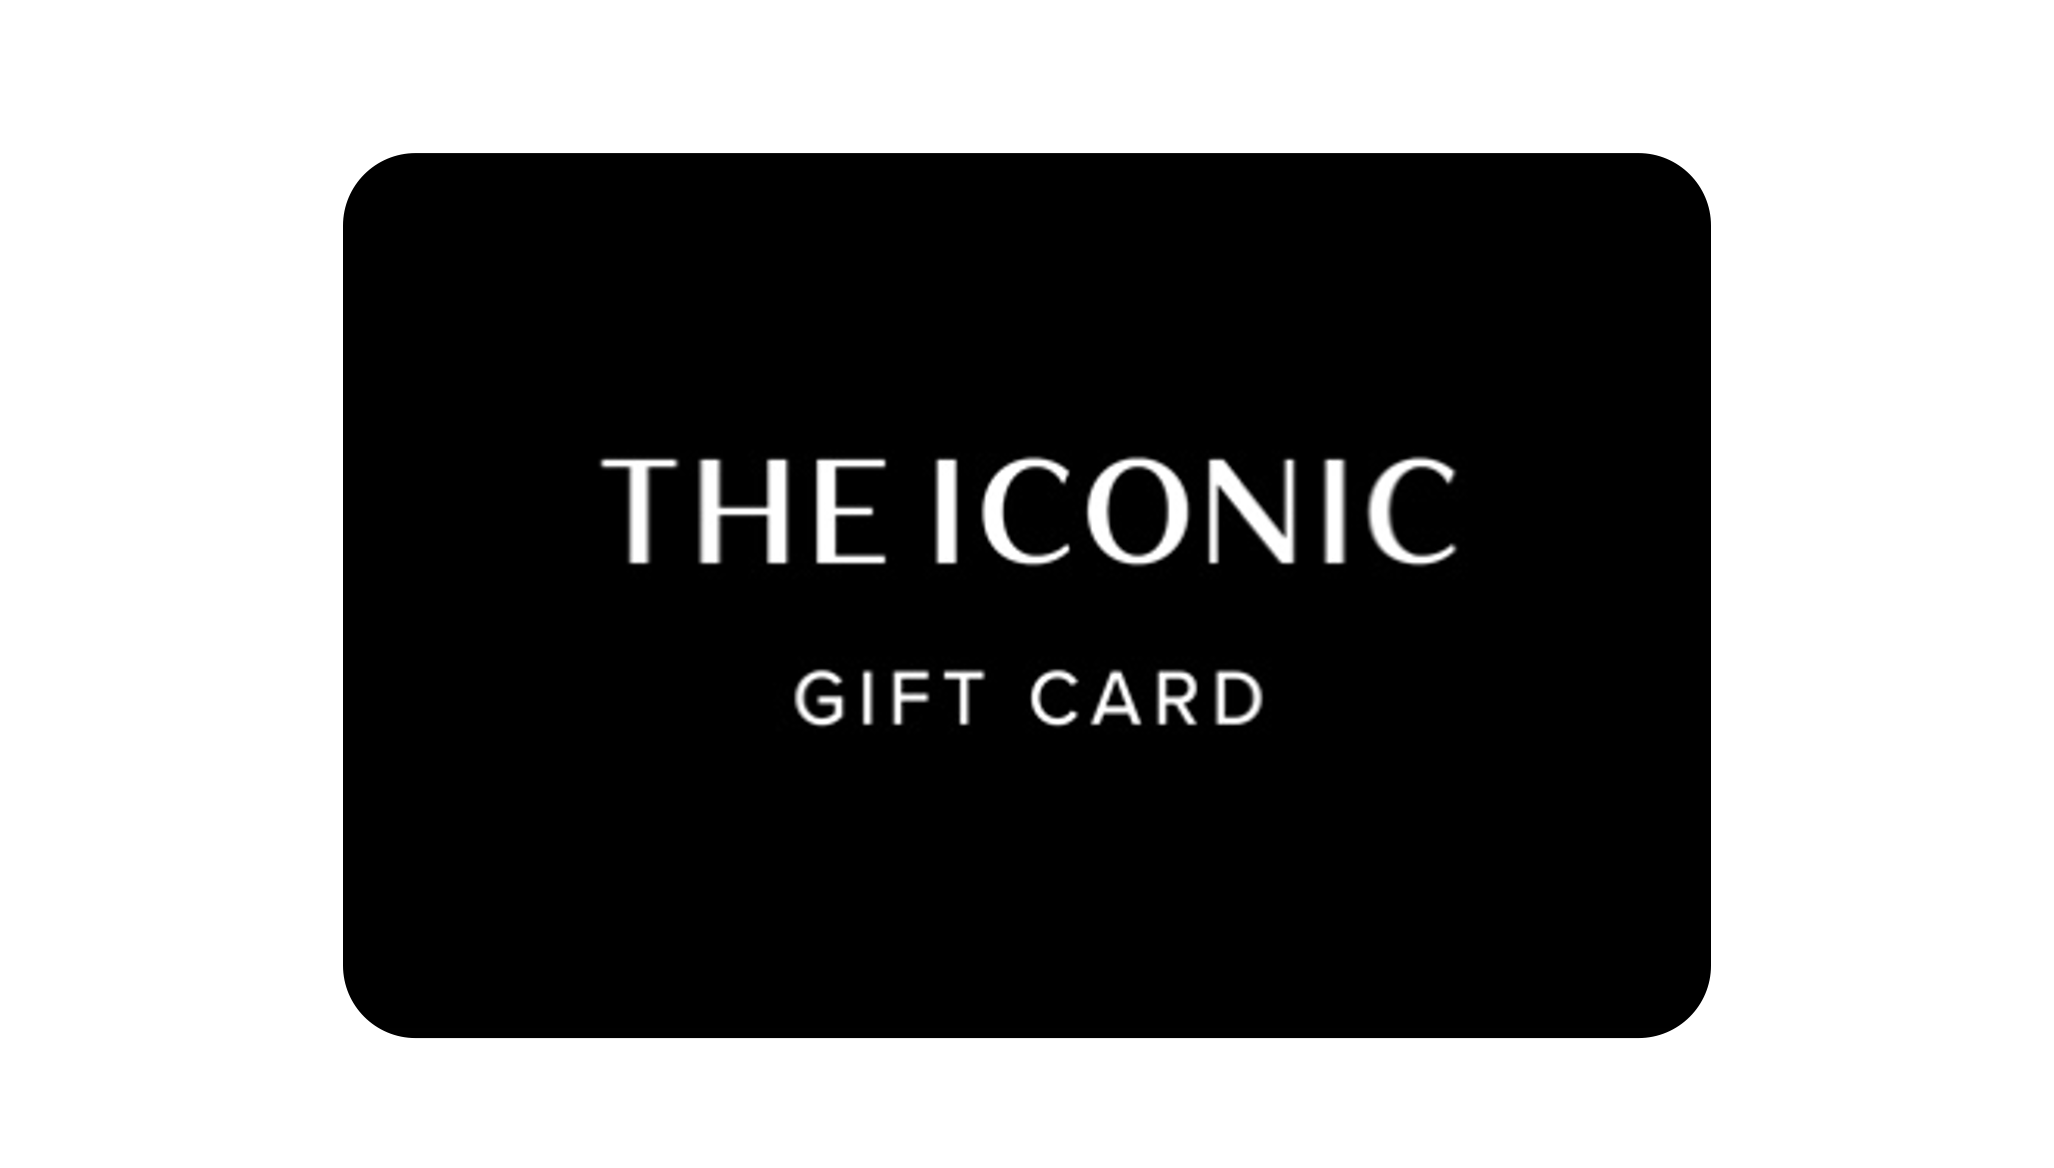 Buy The Iconic eGift Card